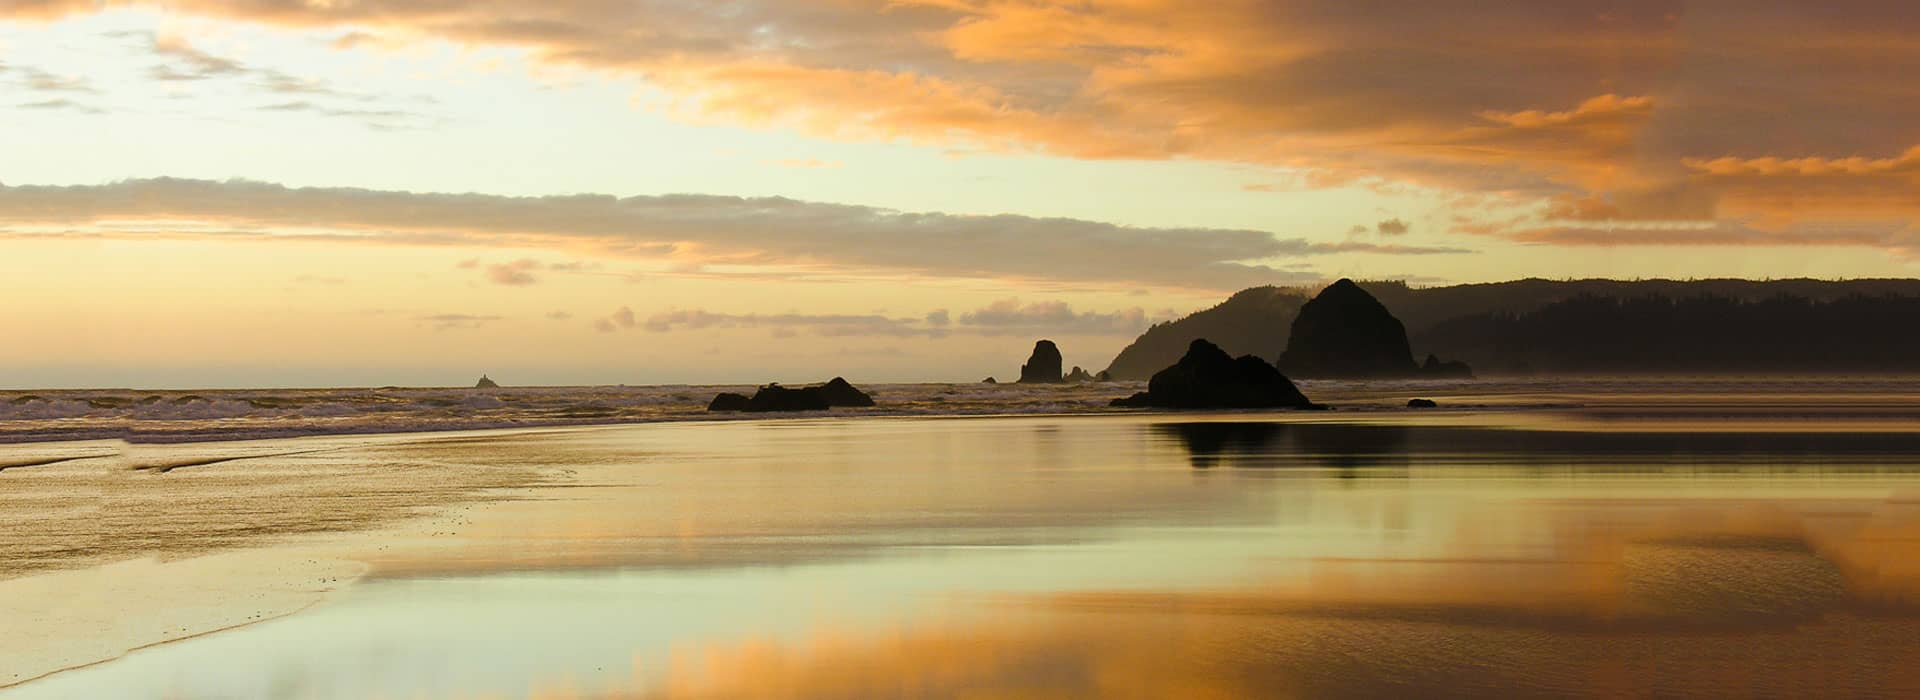 Cannon beach vacation rentals lodging visit cannon beach for Beach house rentals cannon beach